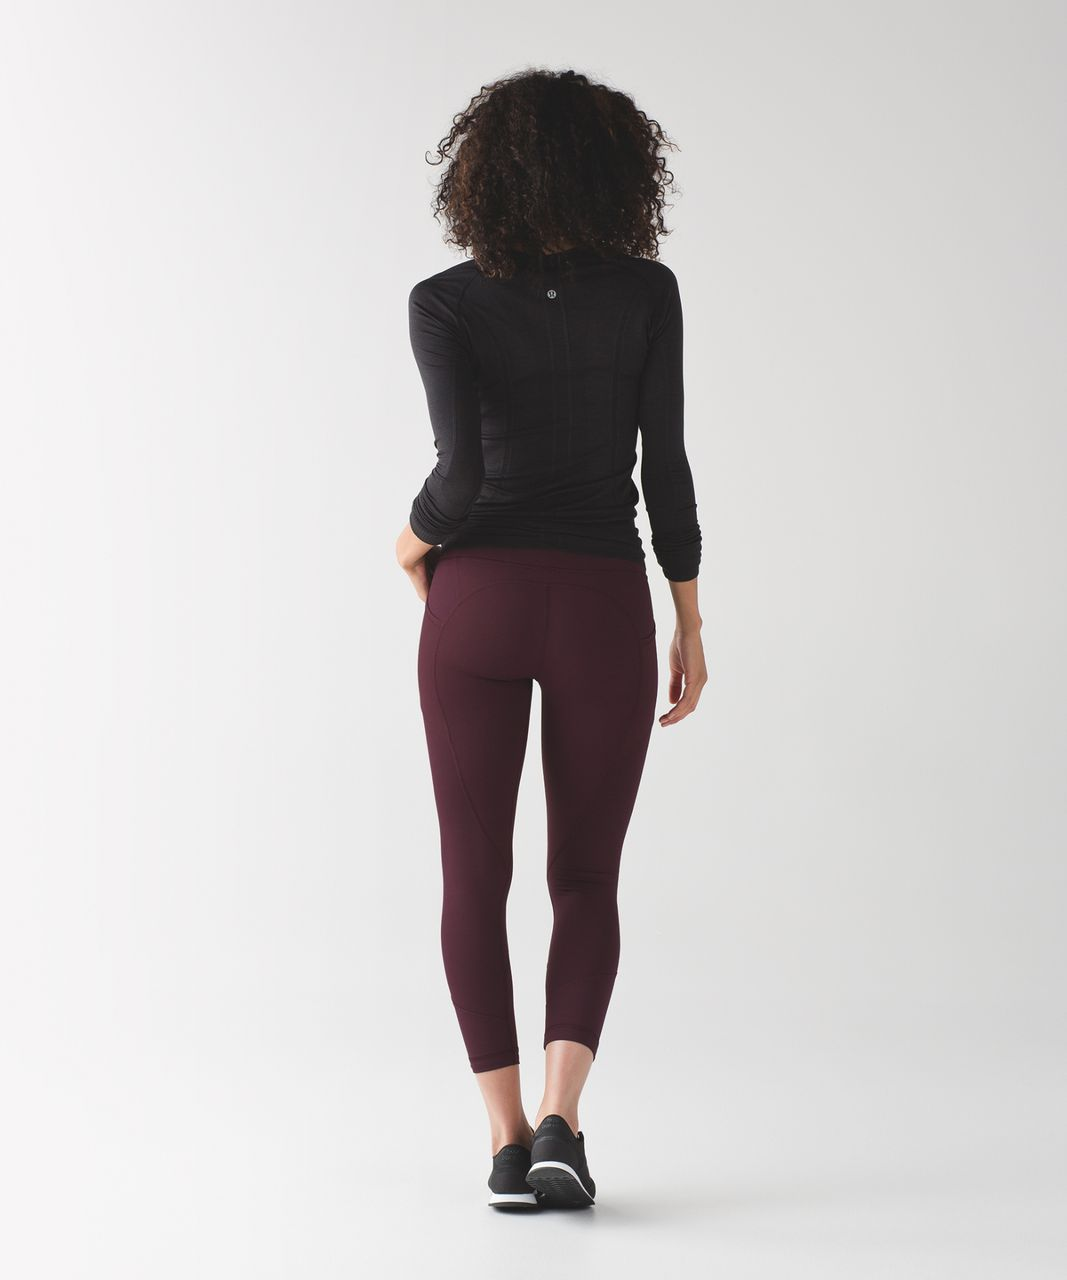 Lululemon All The Right Places Crop II - Bordeaux Drama